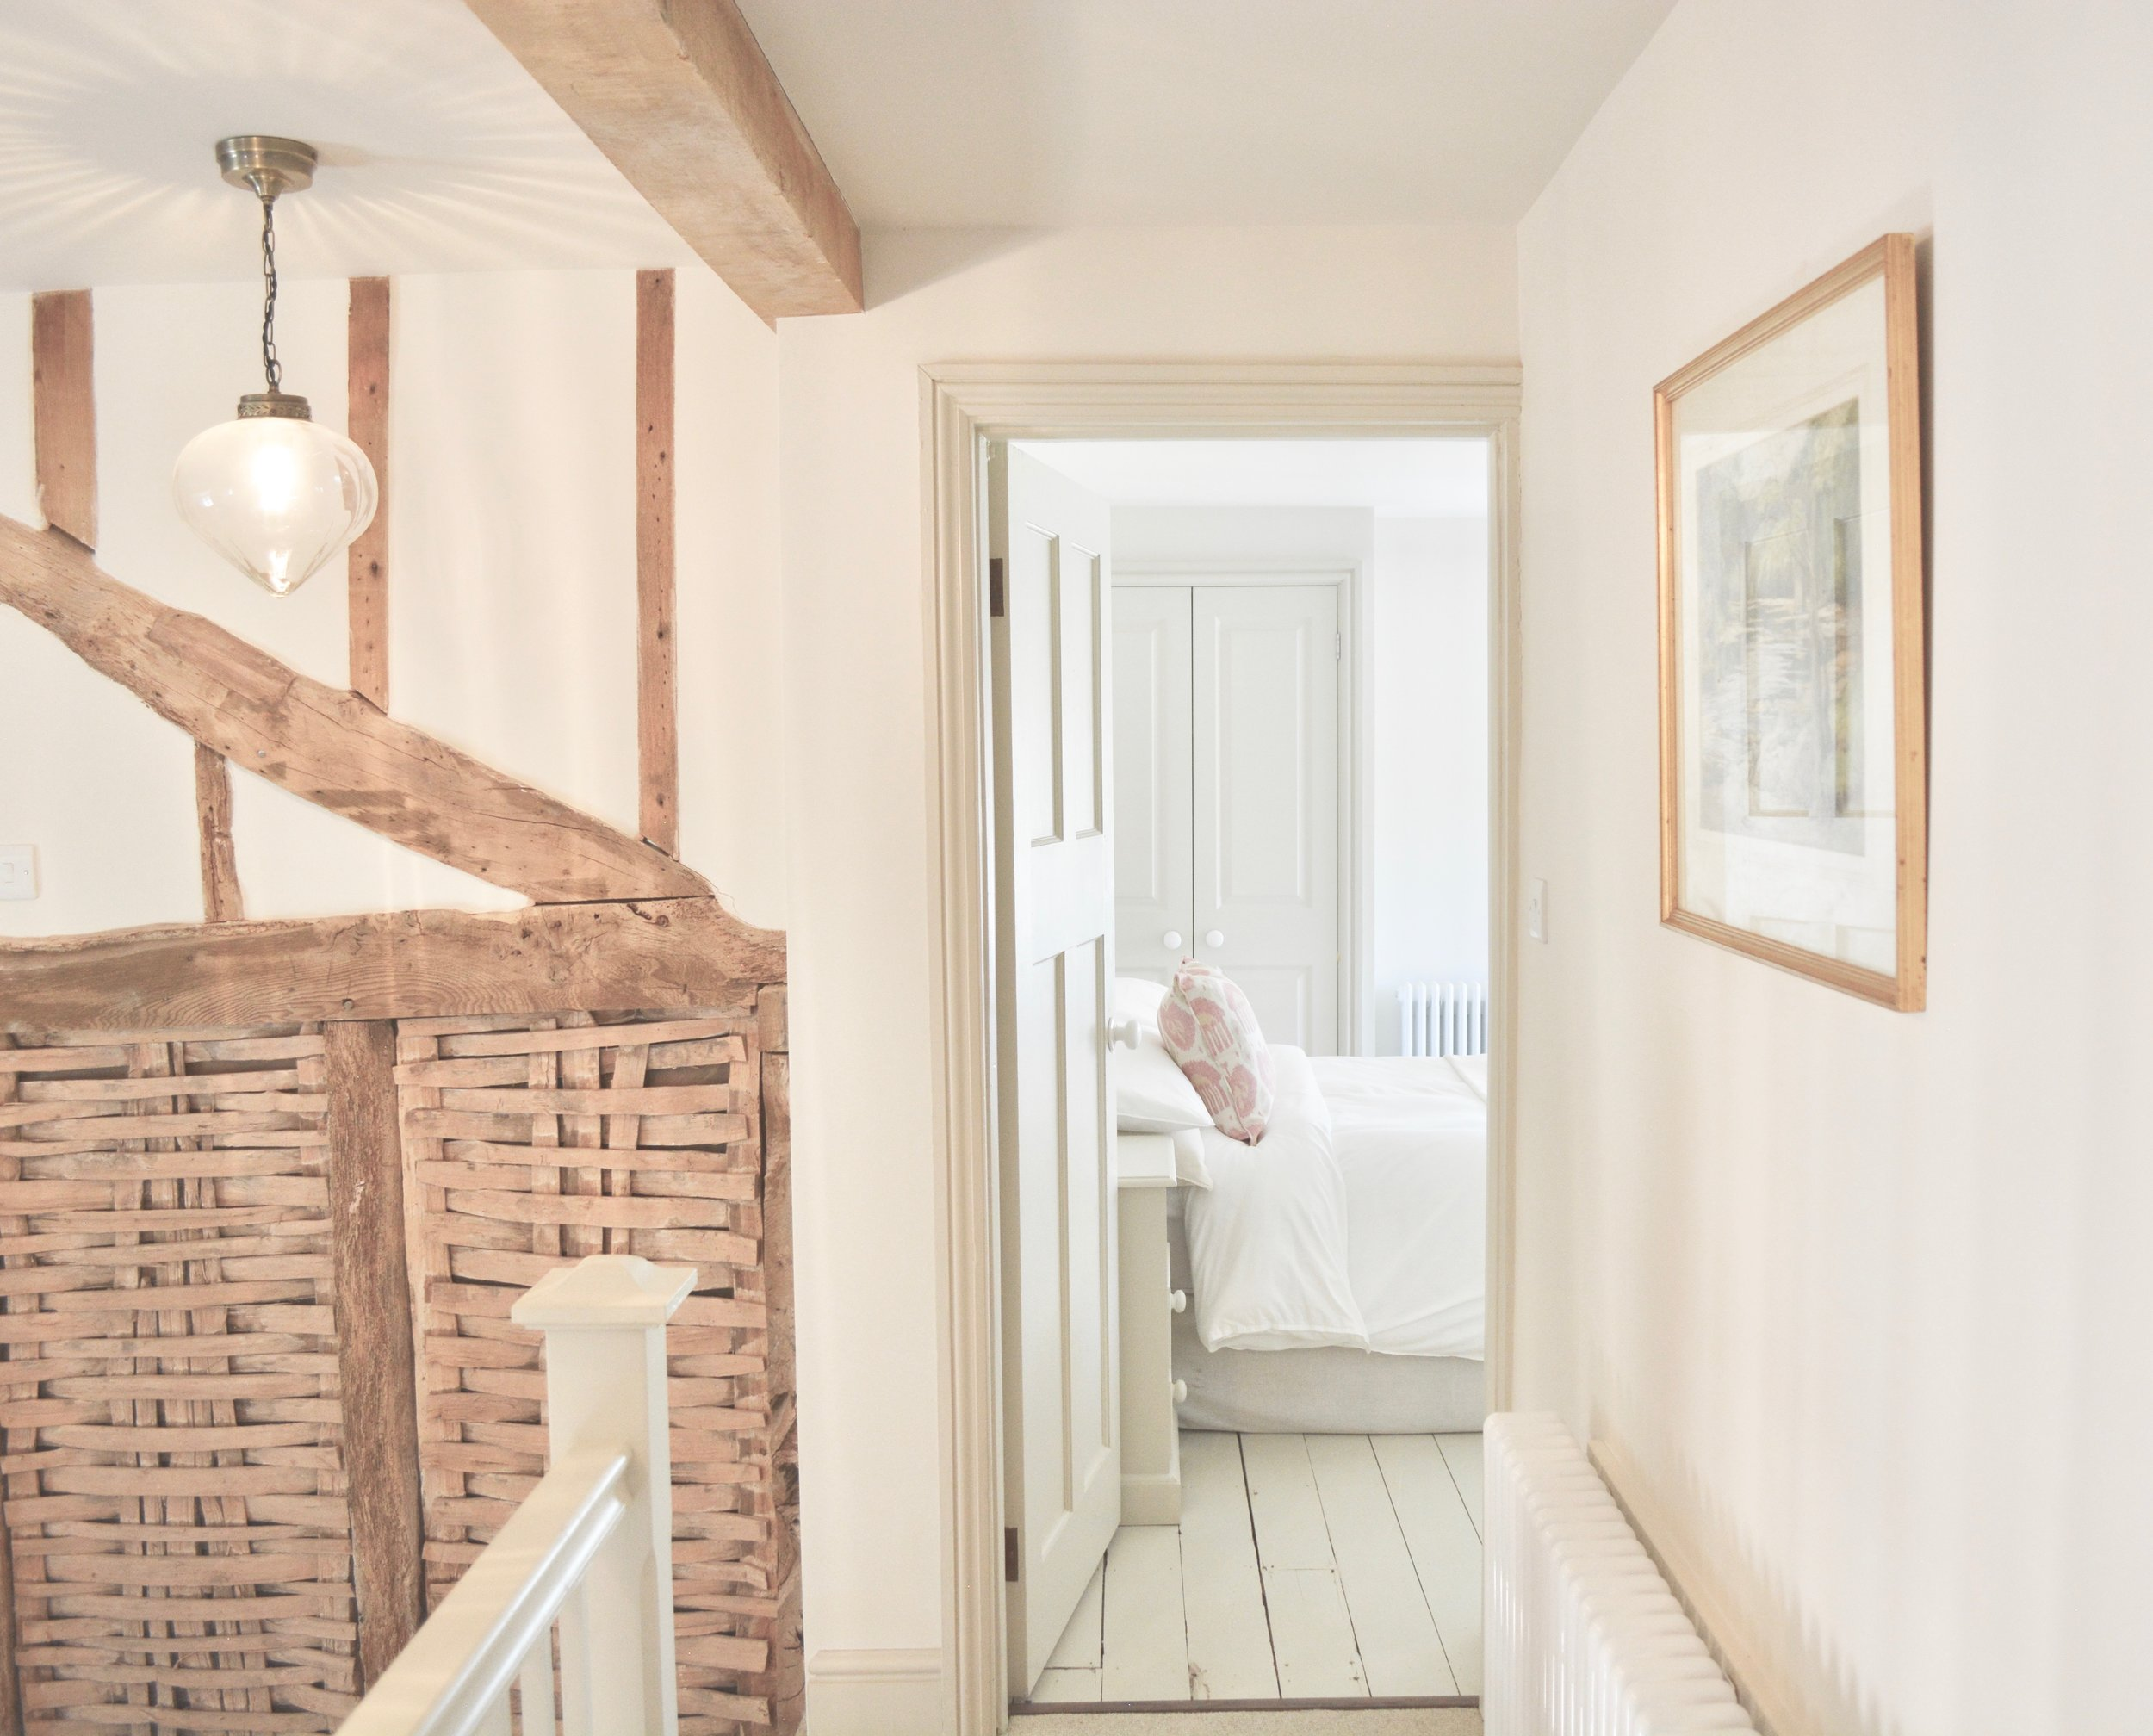 Herefordshire Farmhosue Project - Designed by Hannah Llewelyn Interior Design - hlinteriors.co.uk5.jpg